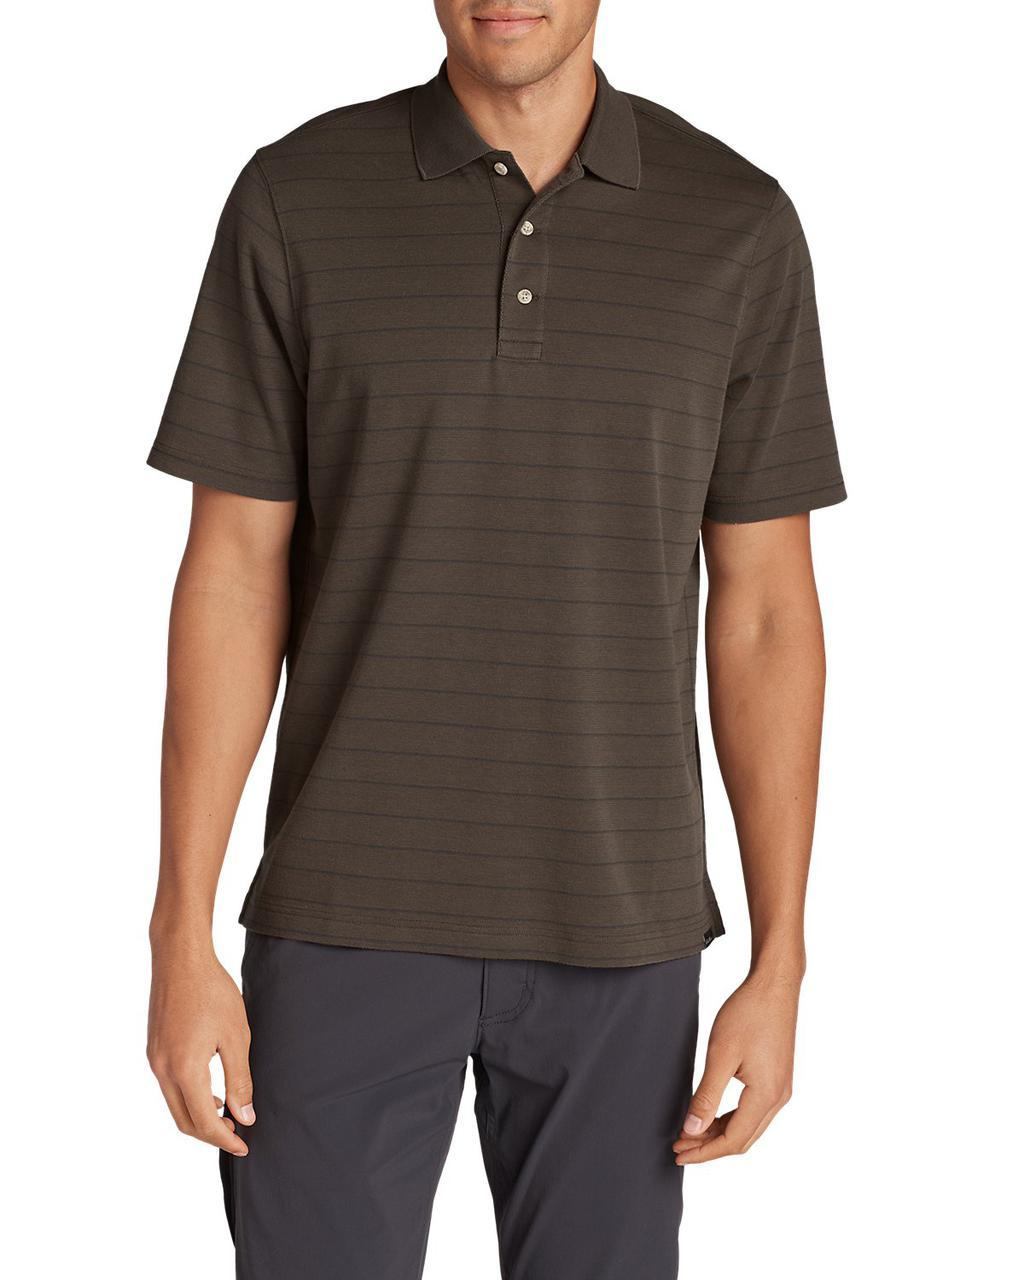 Поло рубашка Eddie Bauer Voyager II Performance Short-Sleeve Polo Shirt L